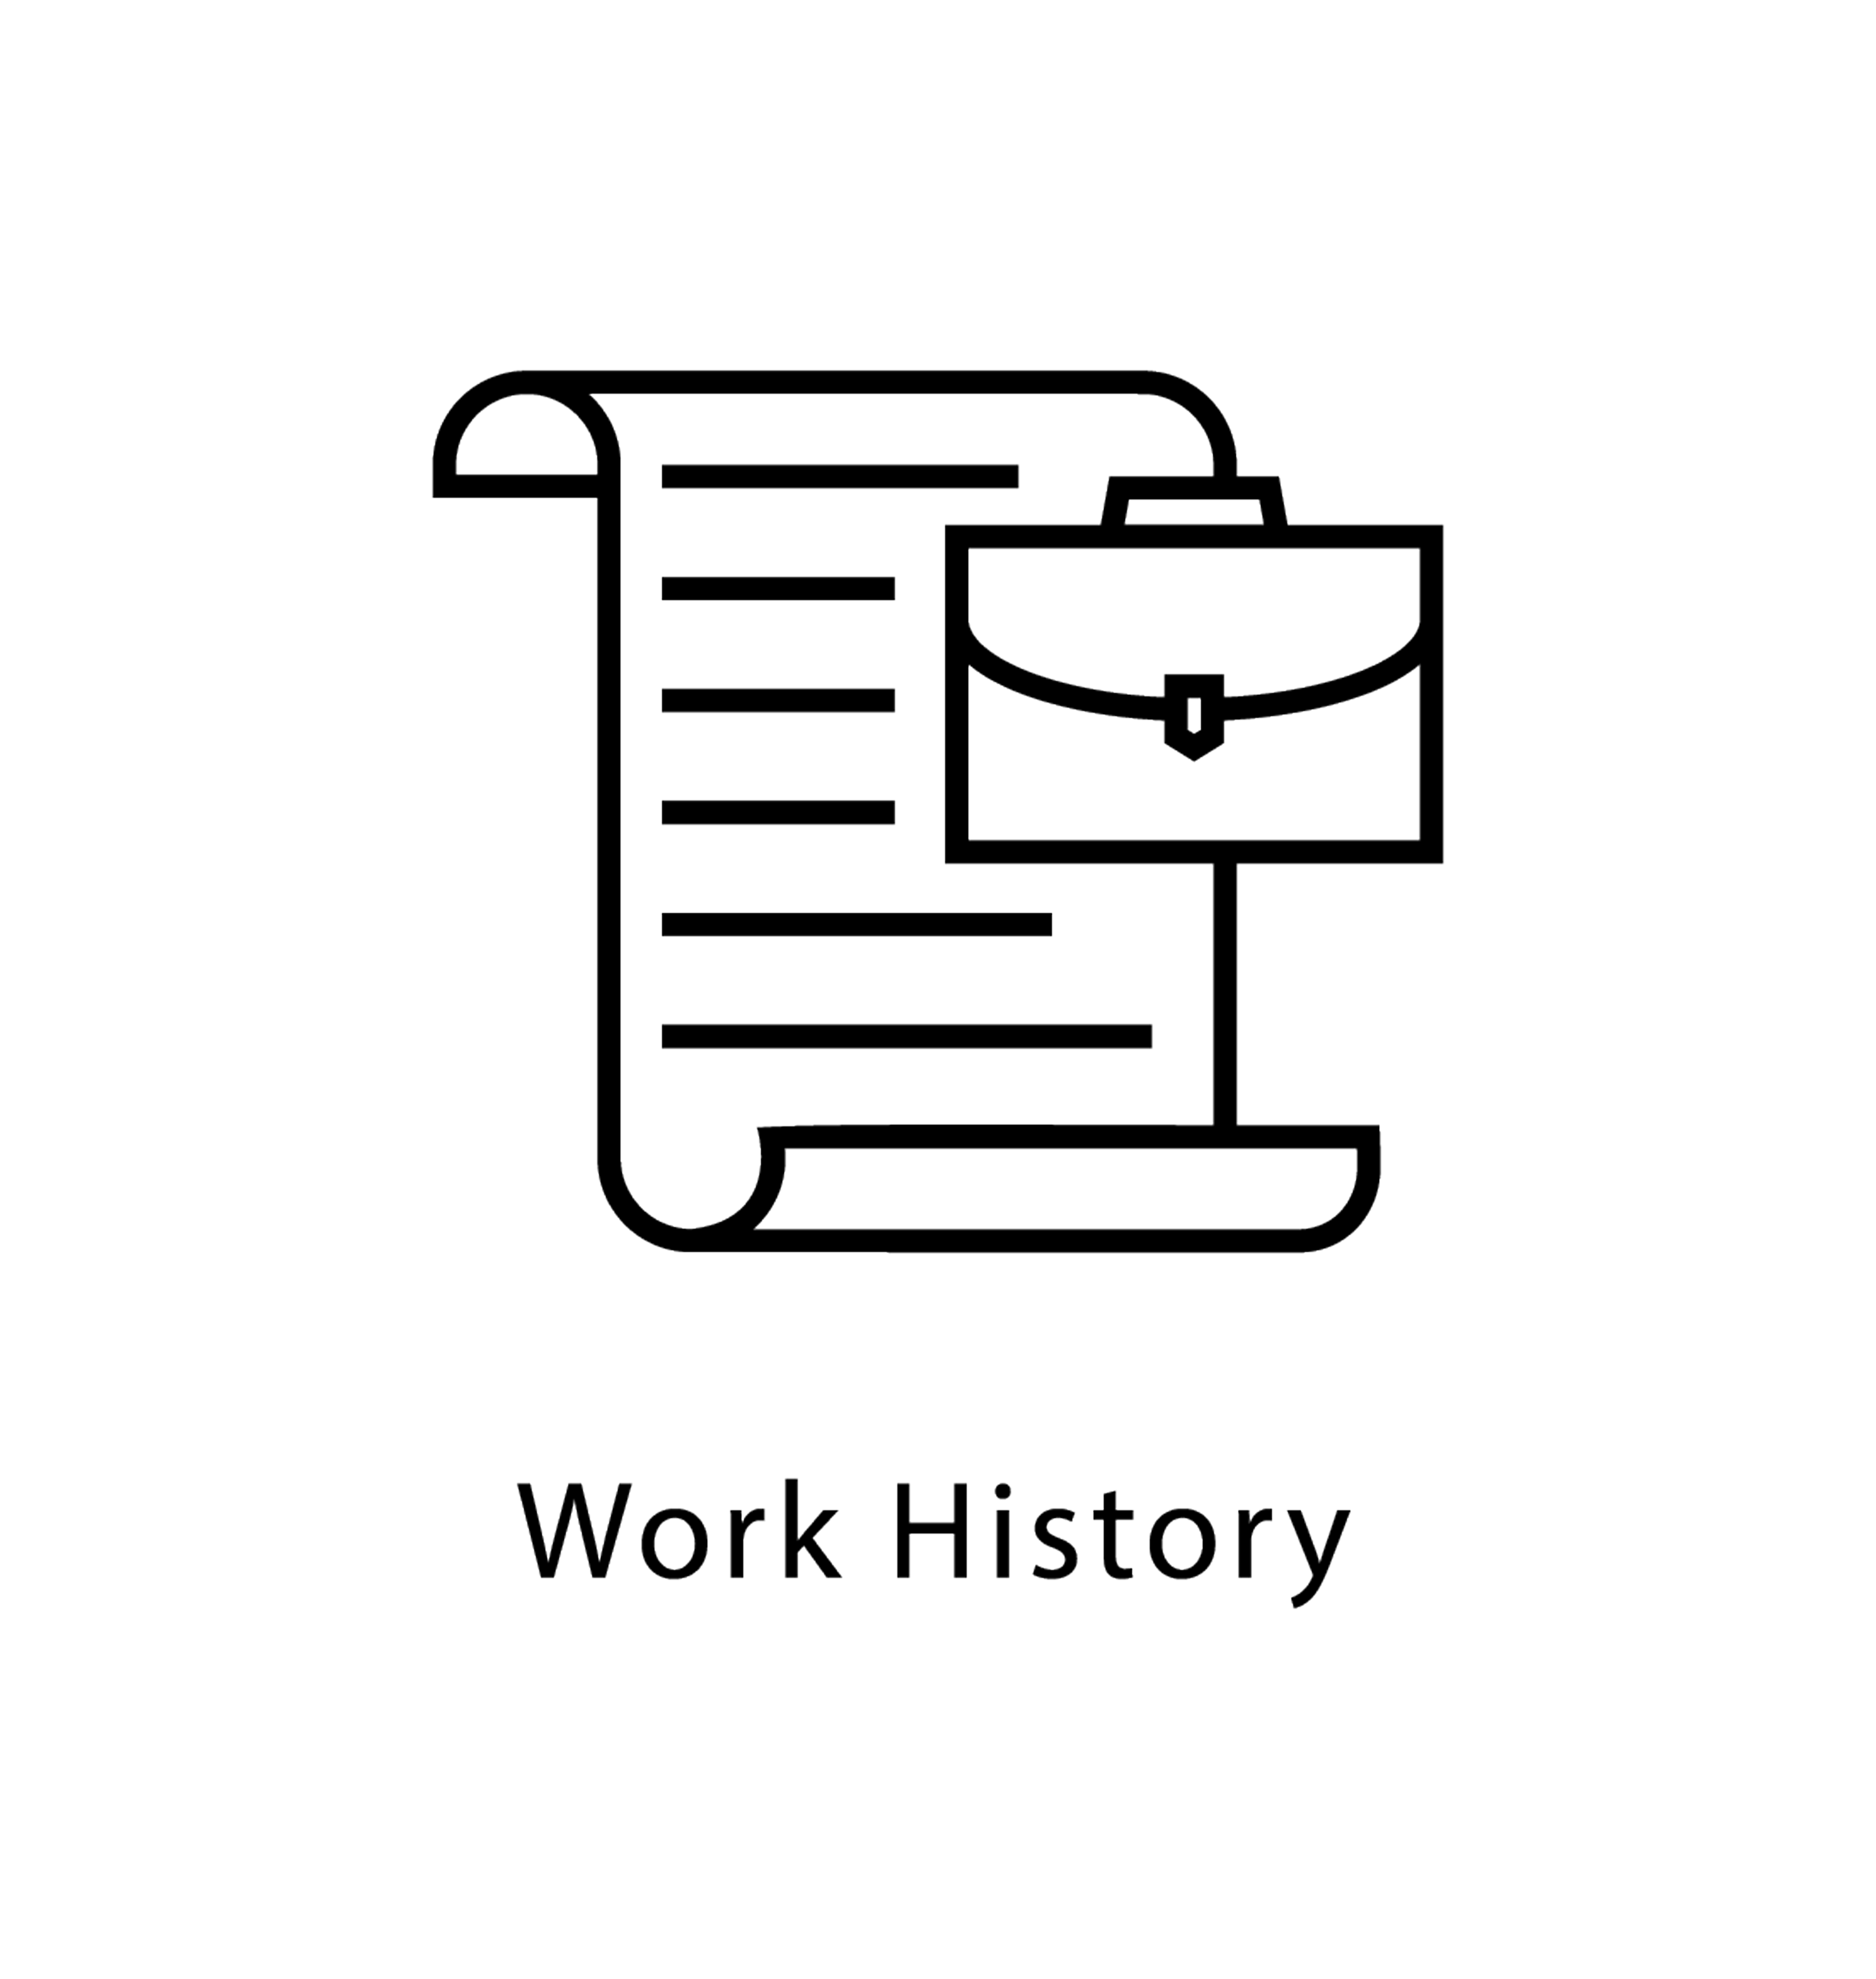 Online records to find Employment History